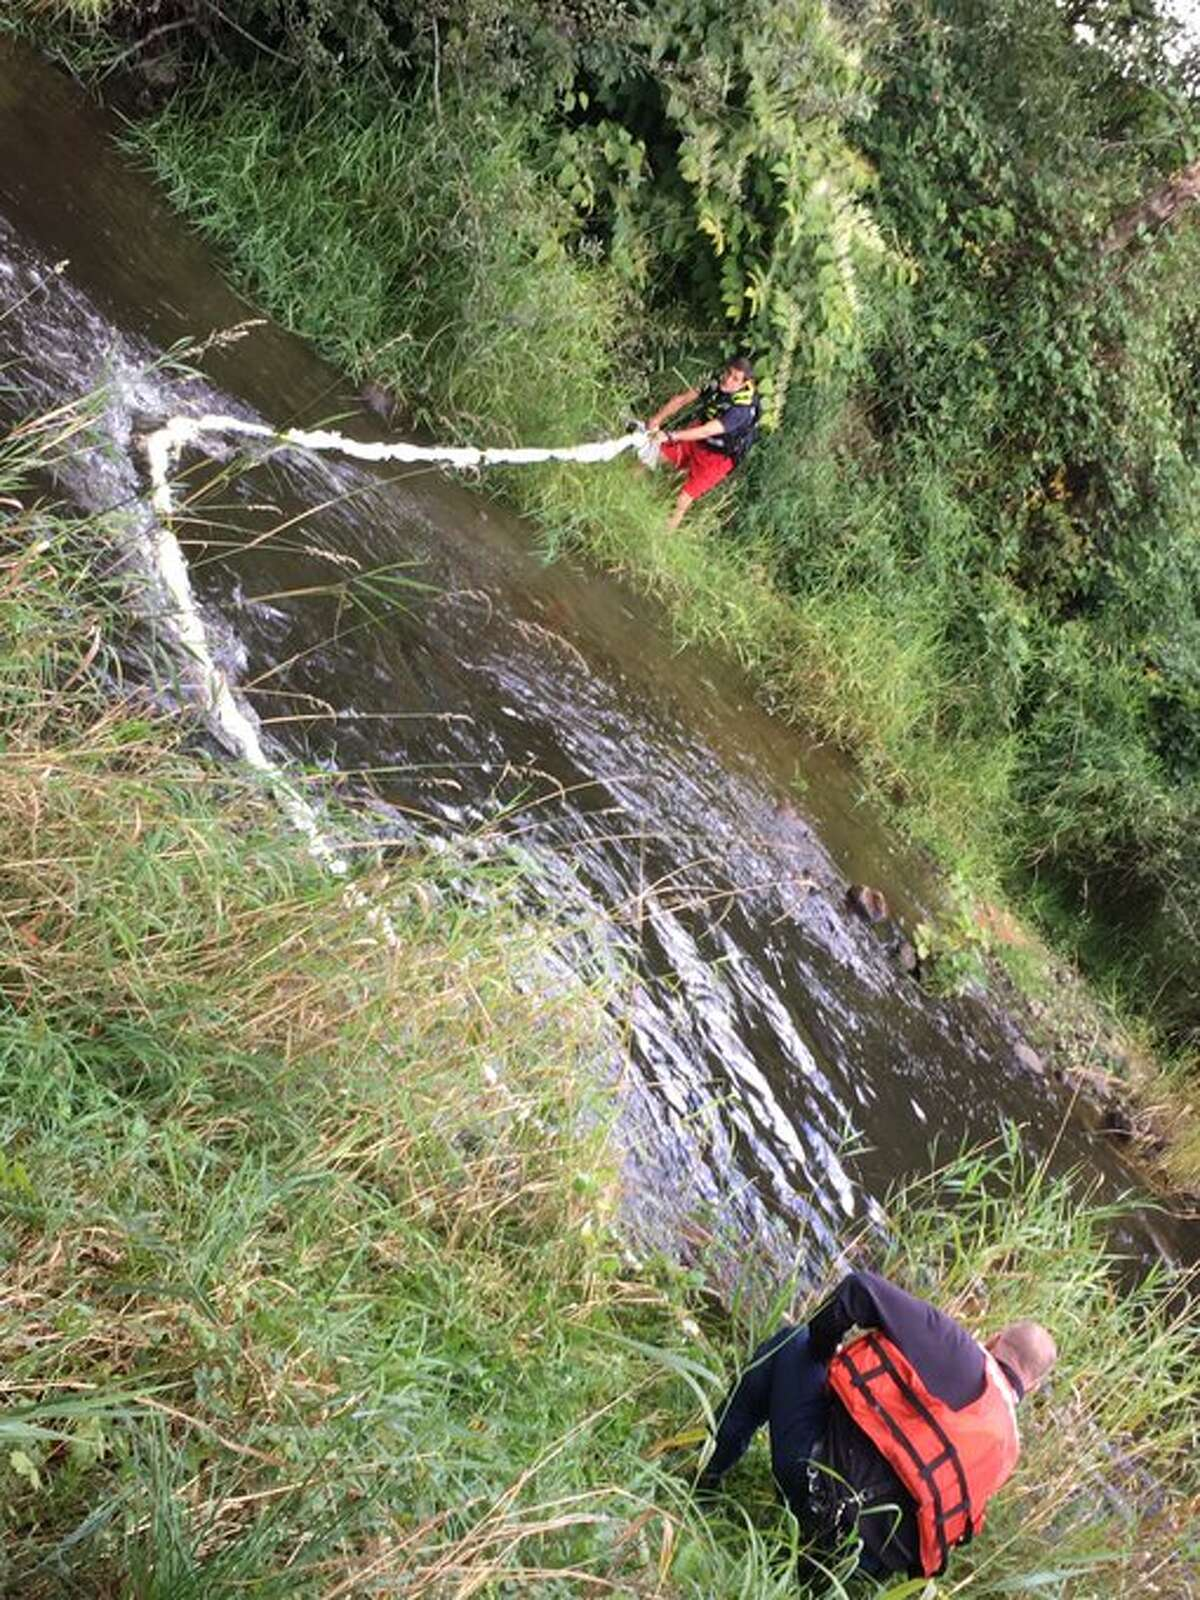 Crews putting an oil absorbent line across Woods Creek to catch any leaking oil.A truck hauling septic vaults on Sept. 16 was crossing a bridge over Woods Creek in Monroe, Washington when it collapsed, according to Snohomish County fire officials. There were no reported injuries.